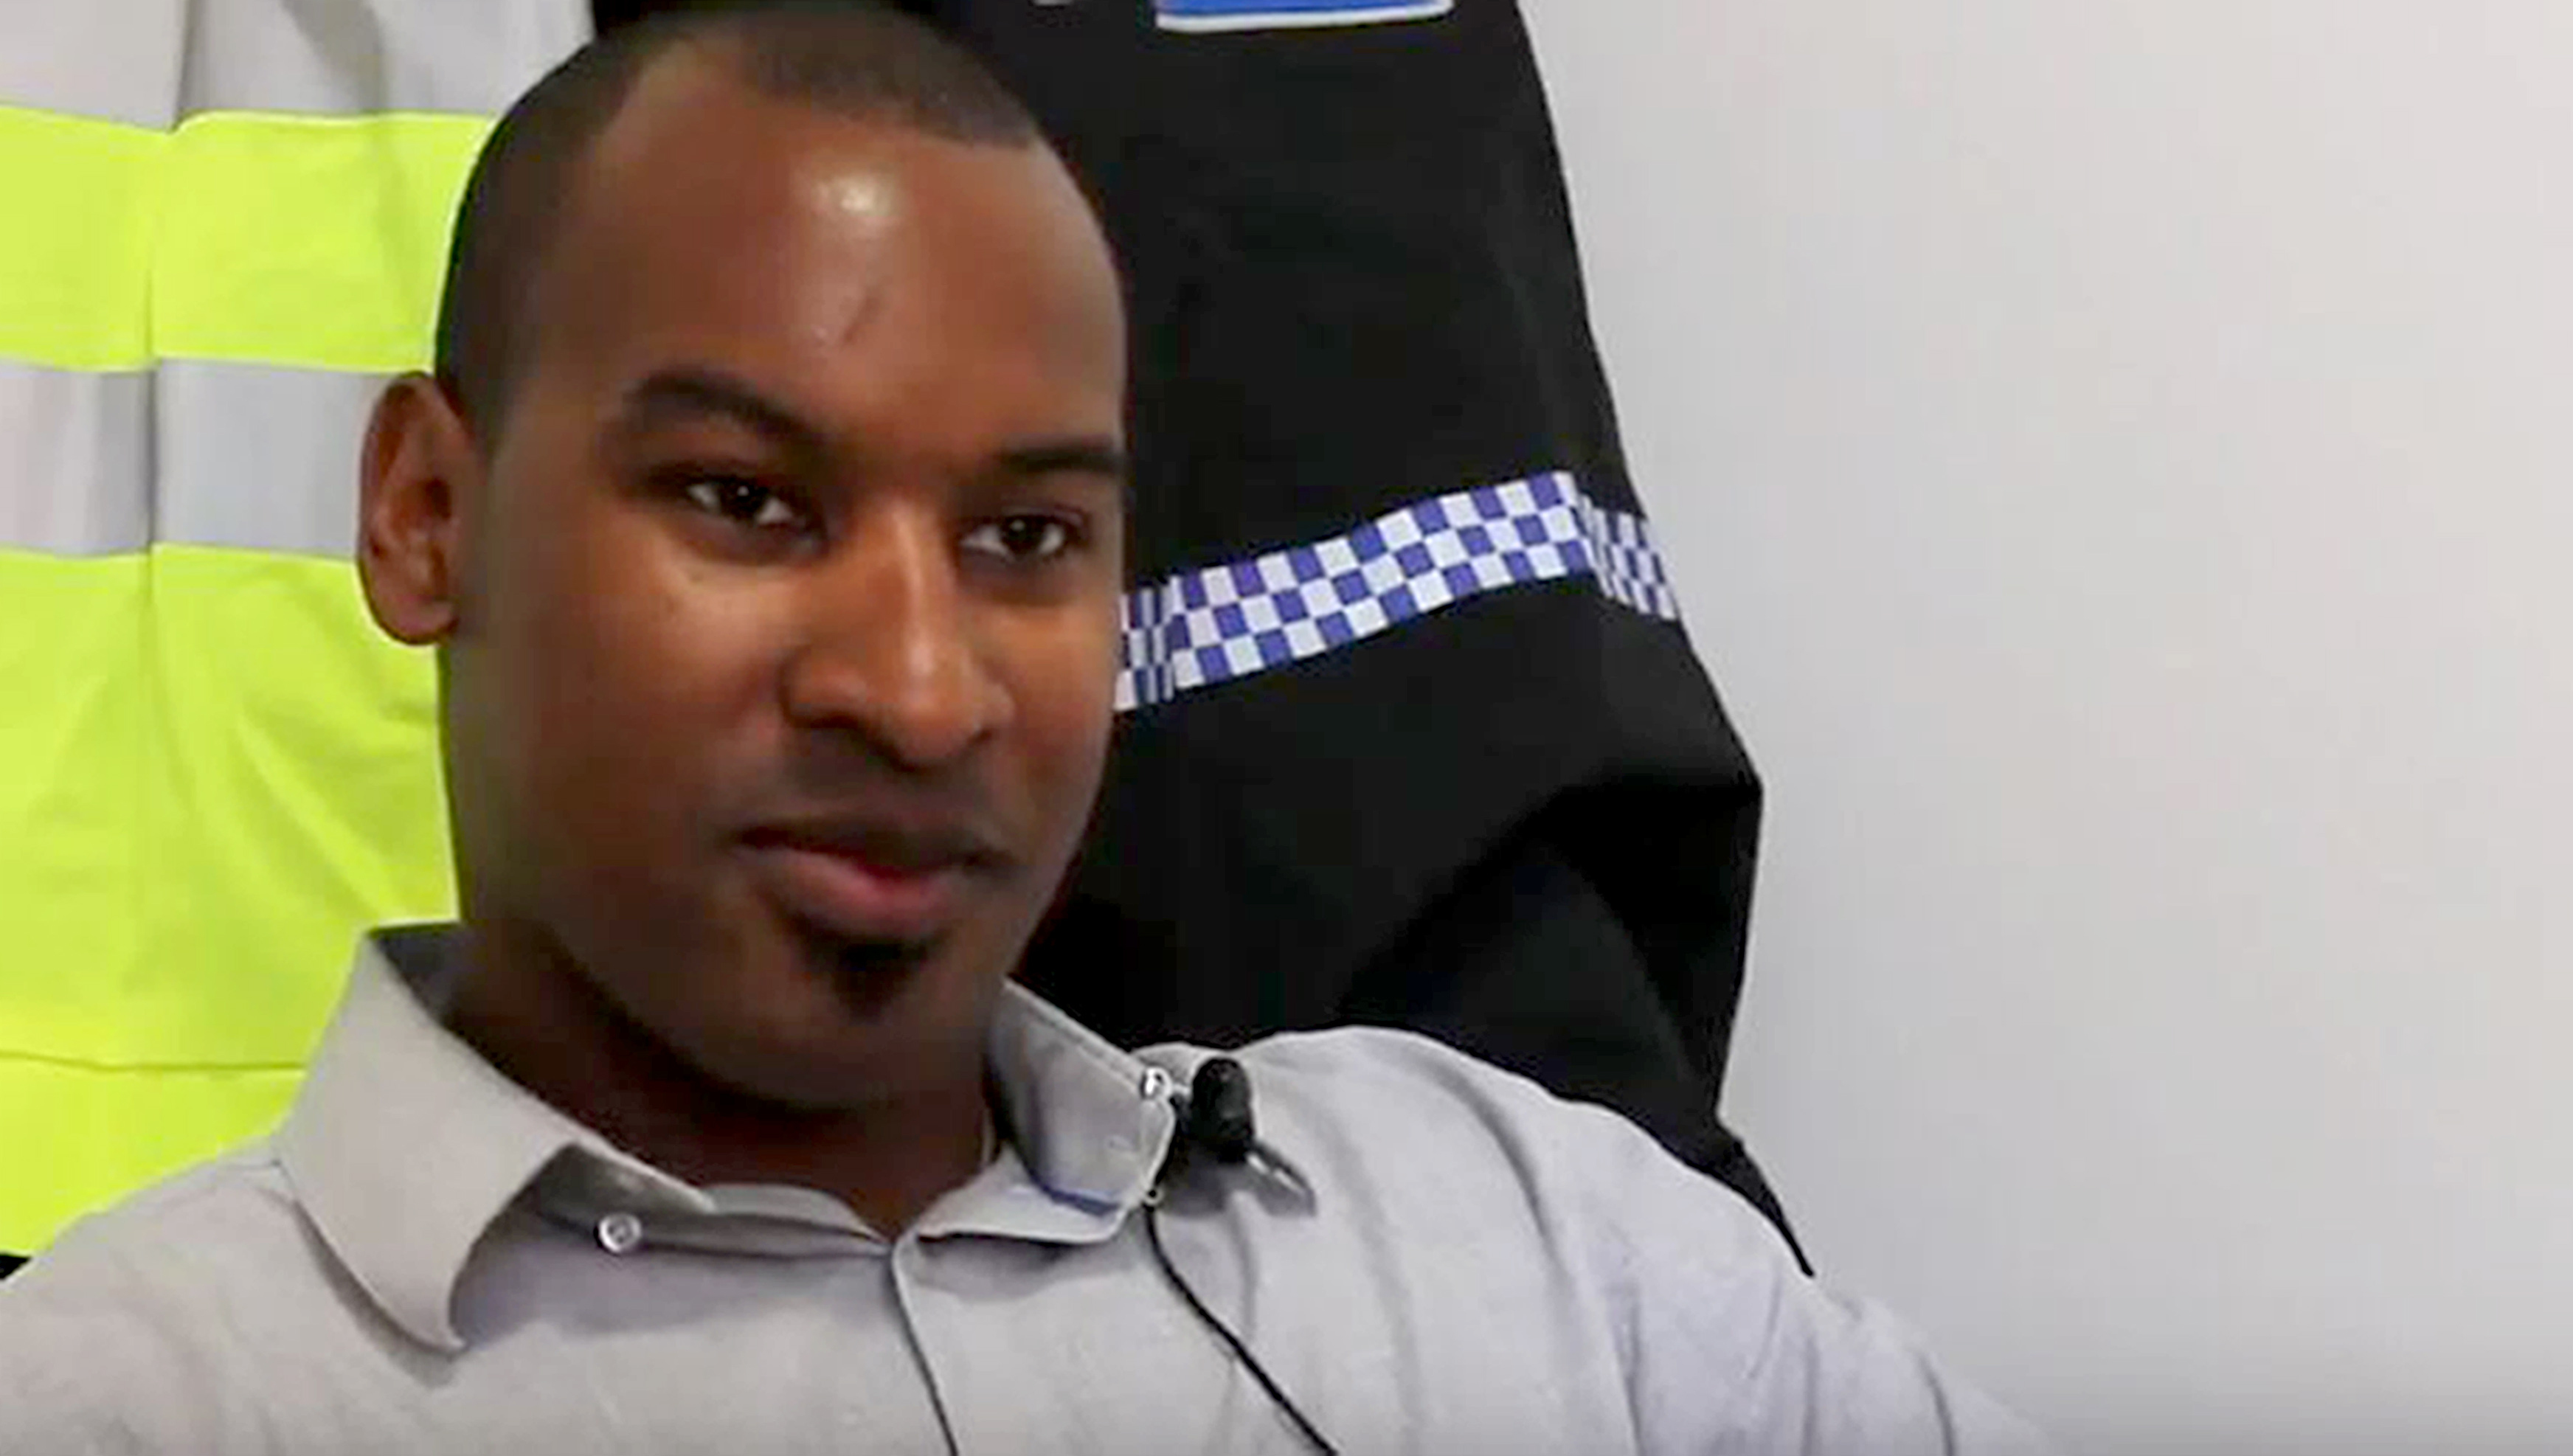 BTP officer Wayne Marques was stabbed during the London terror attack